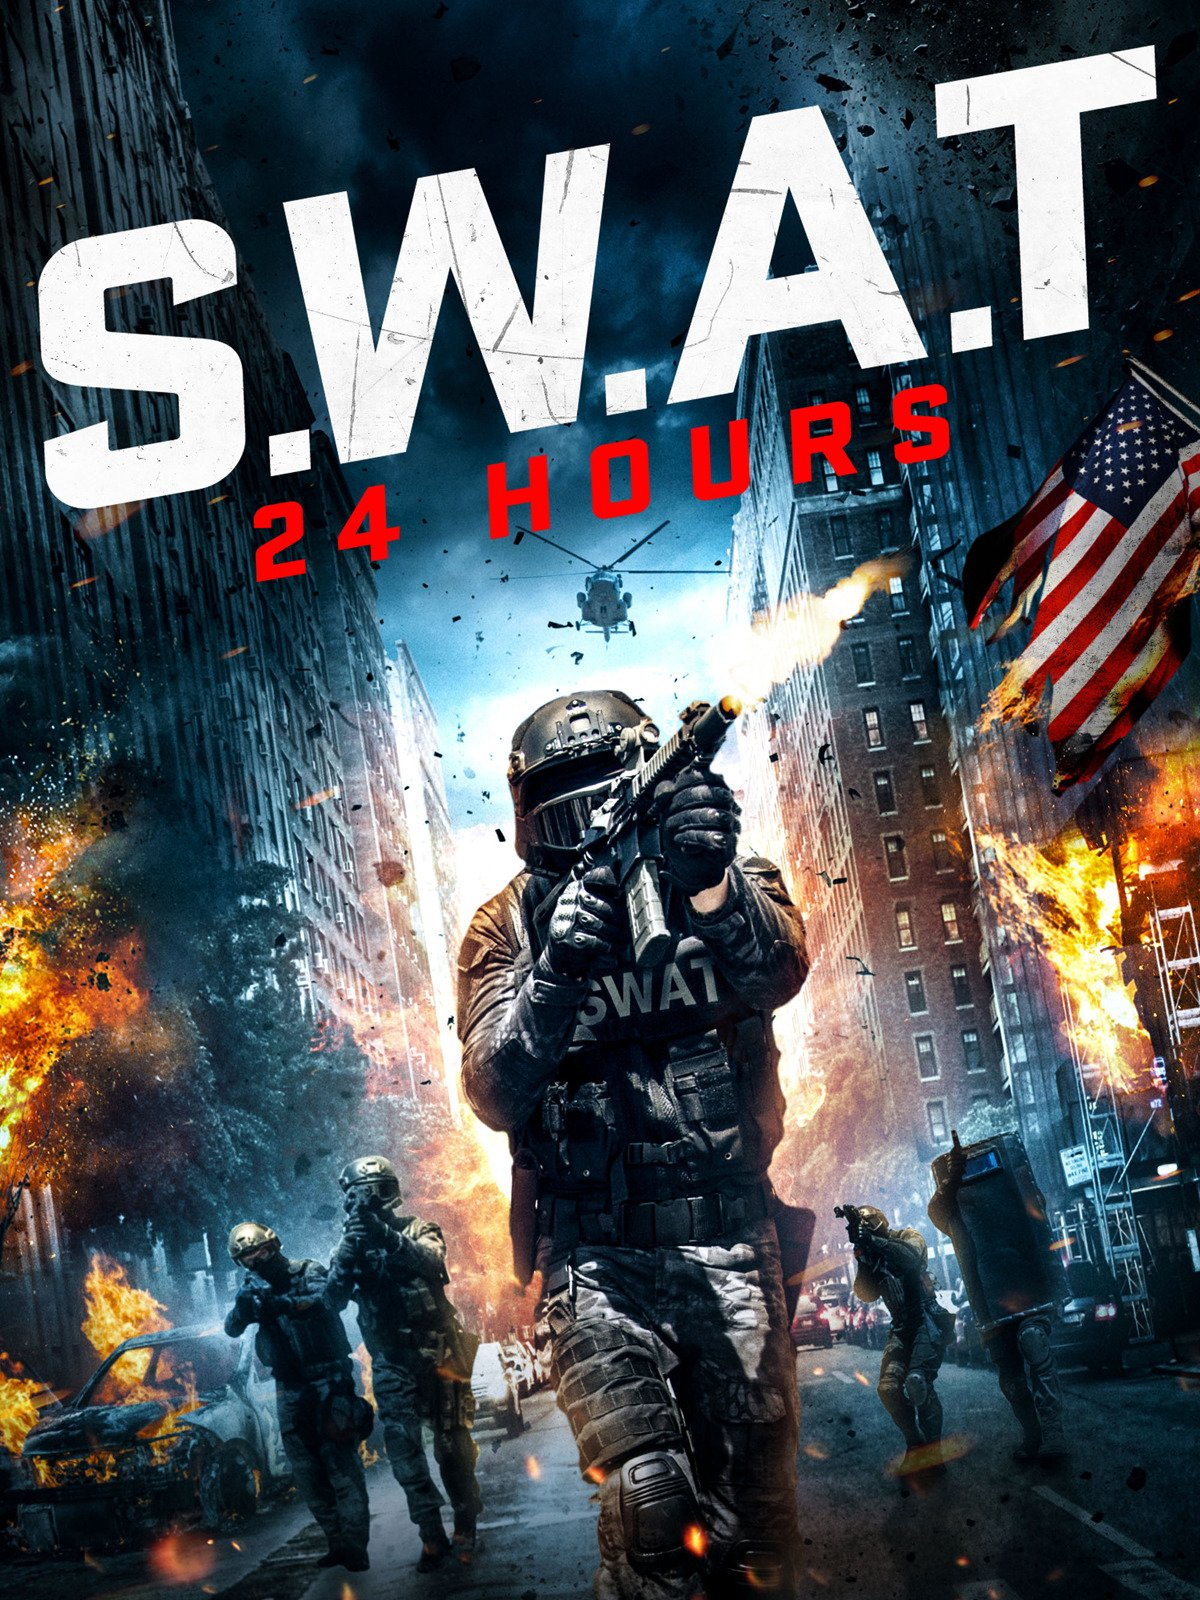 S.W.A.T 24 Hours